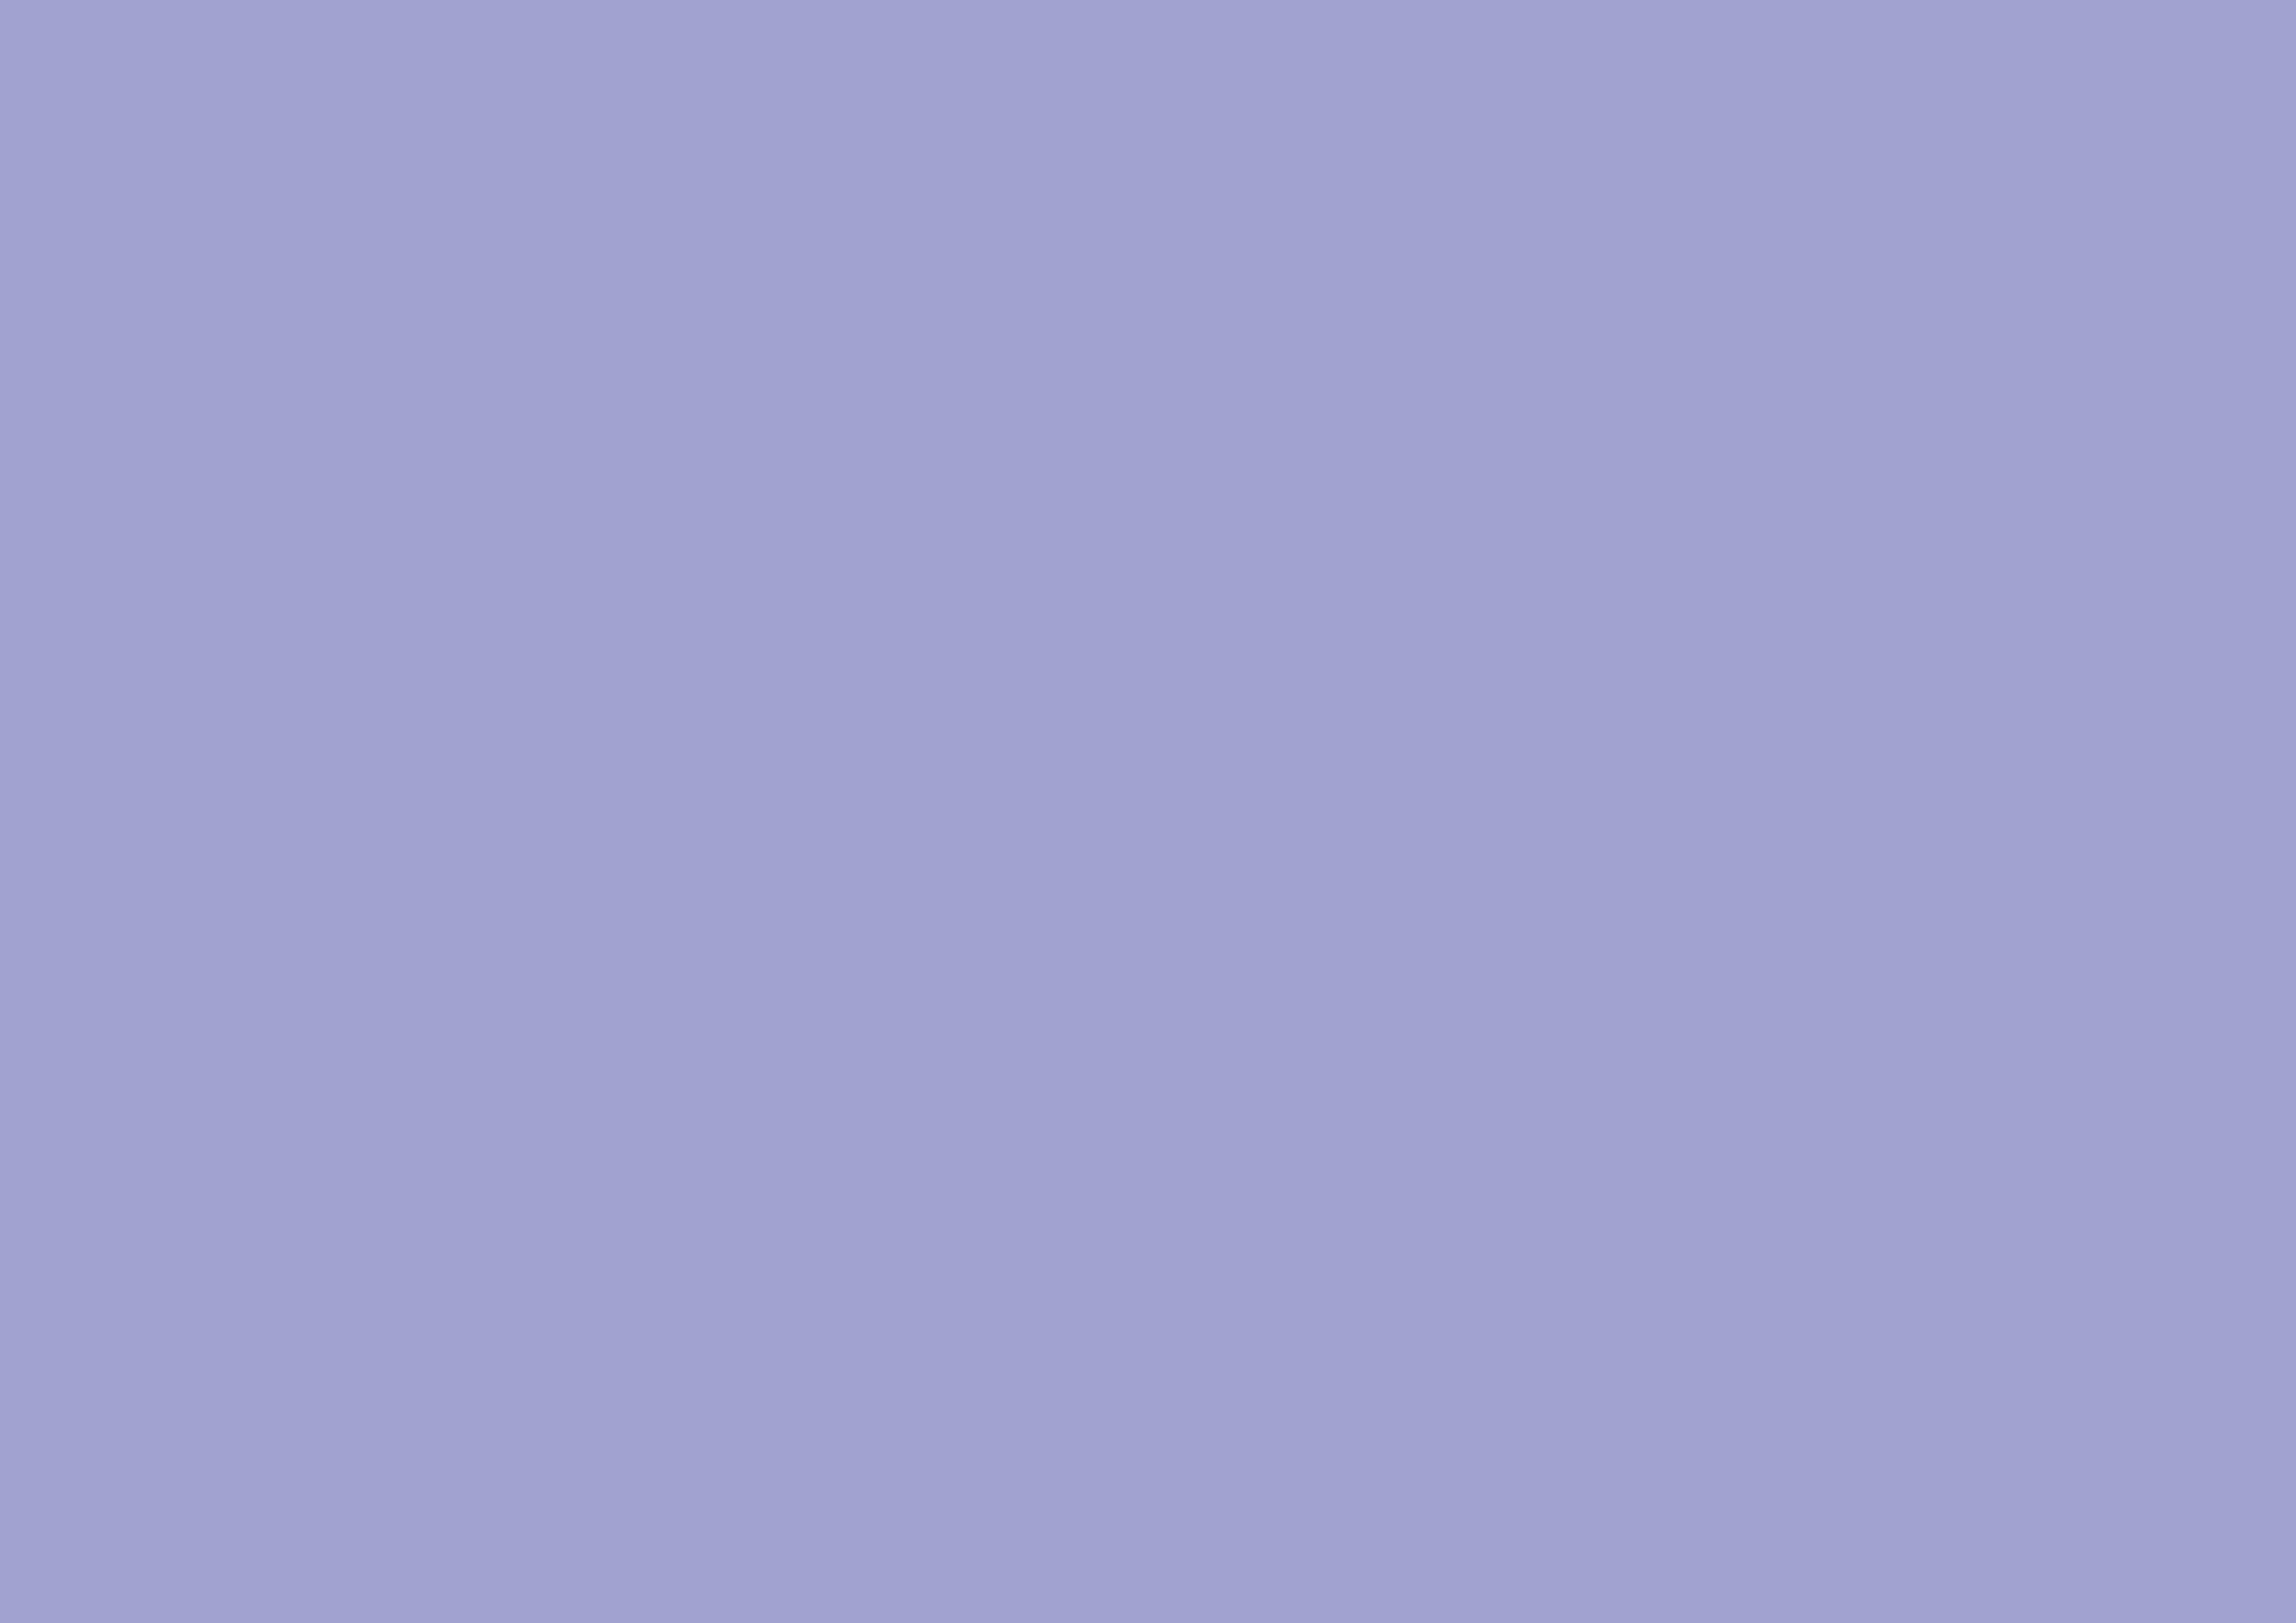 3508x2480 Blue Bell Solid Color Background